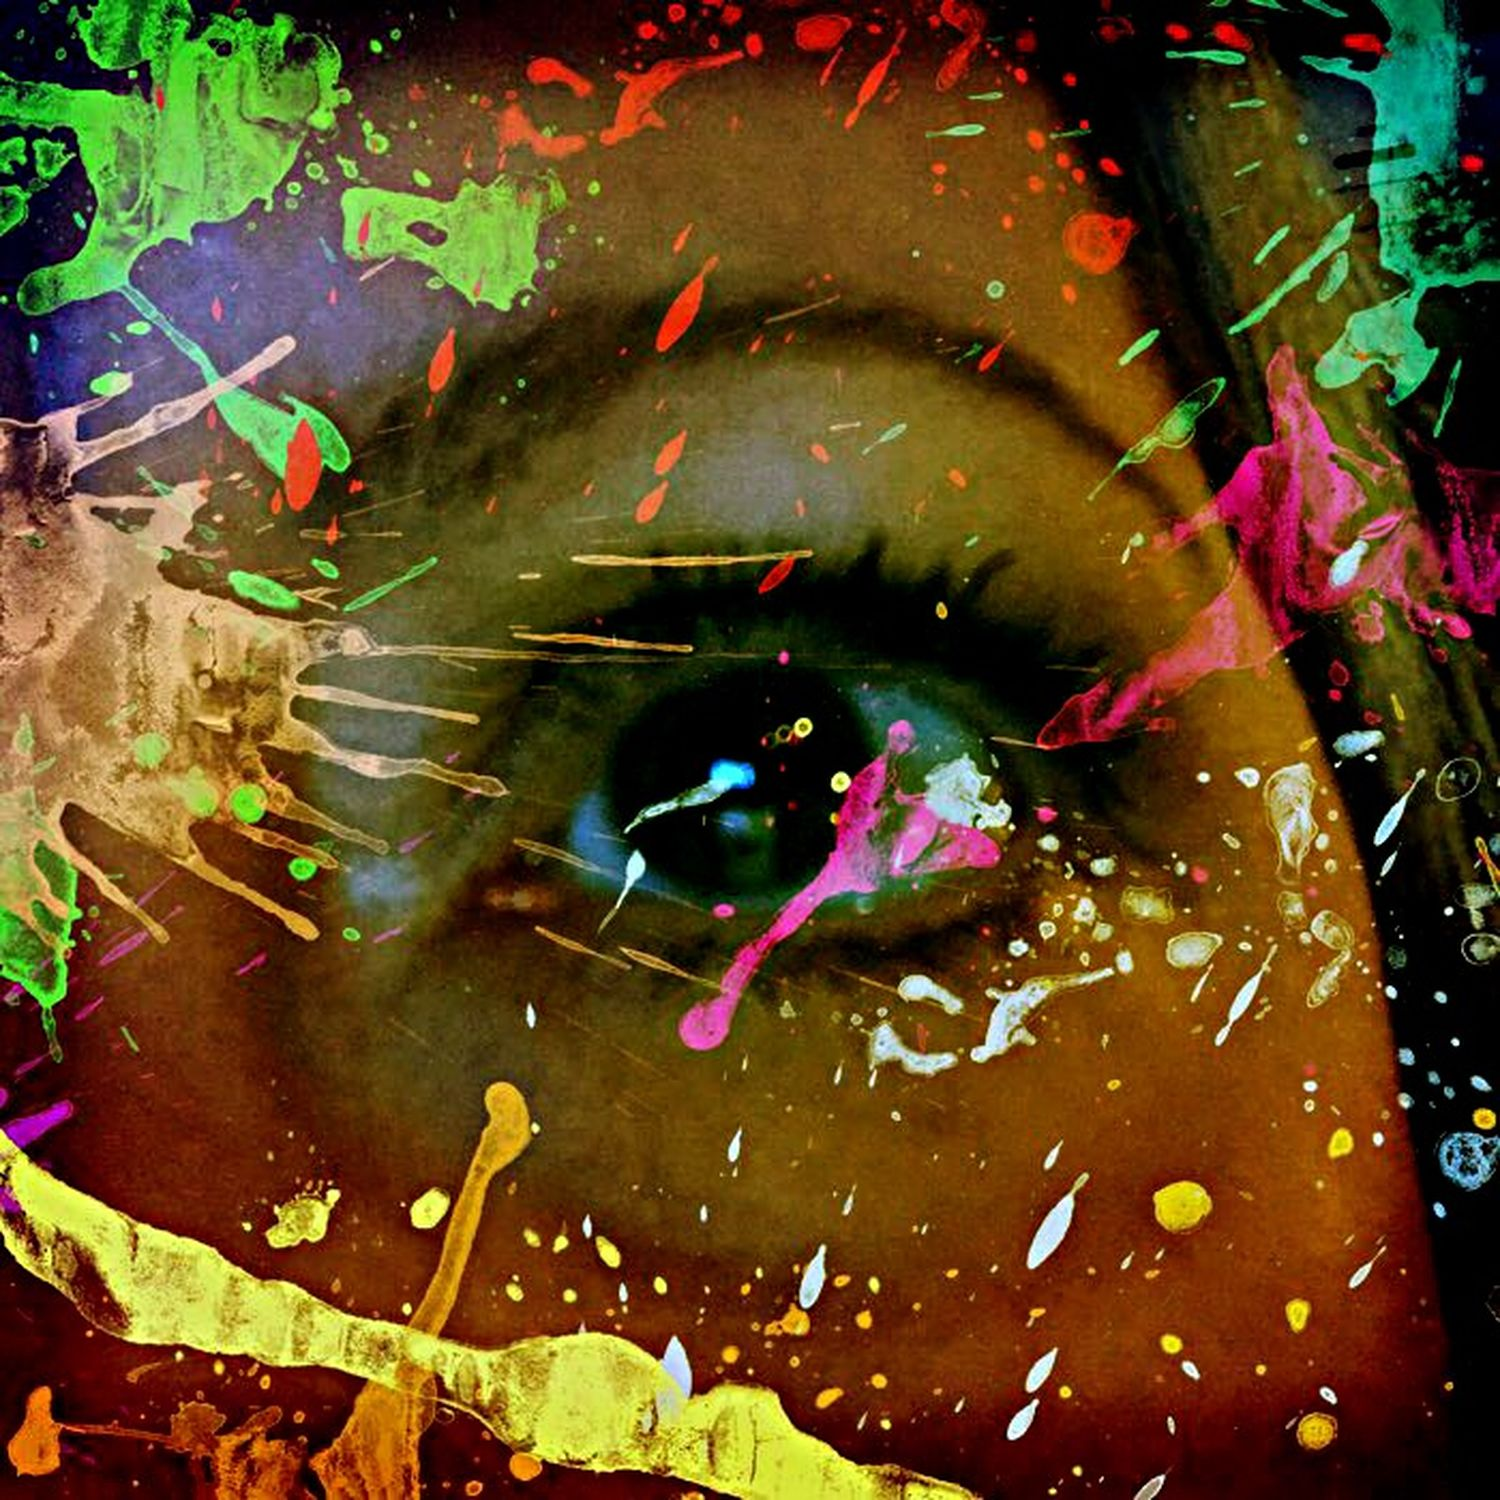 The Fashionist - 2015 EyeEm Awards Falling Orbs From The Sky Portrait Of A Woman Capturing Movement My Smartphone Life Abstractions In Colors NEM Self Abstract Me